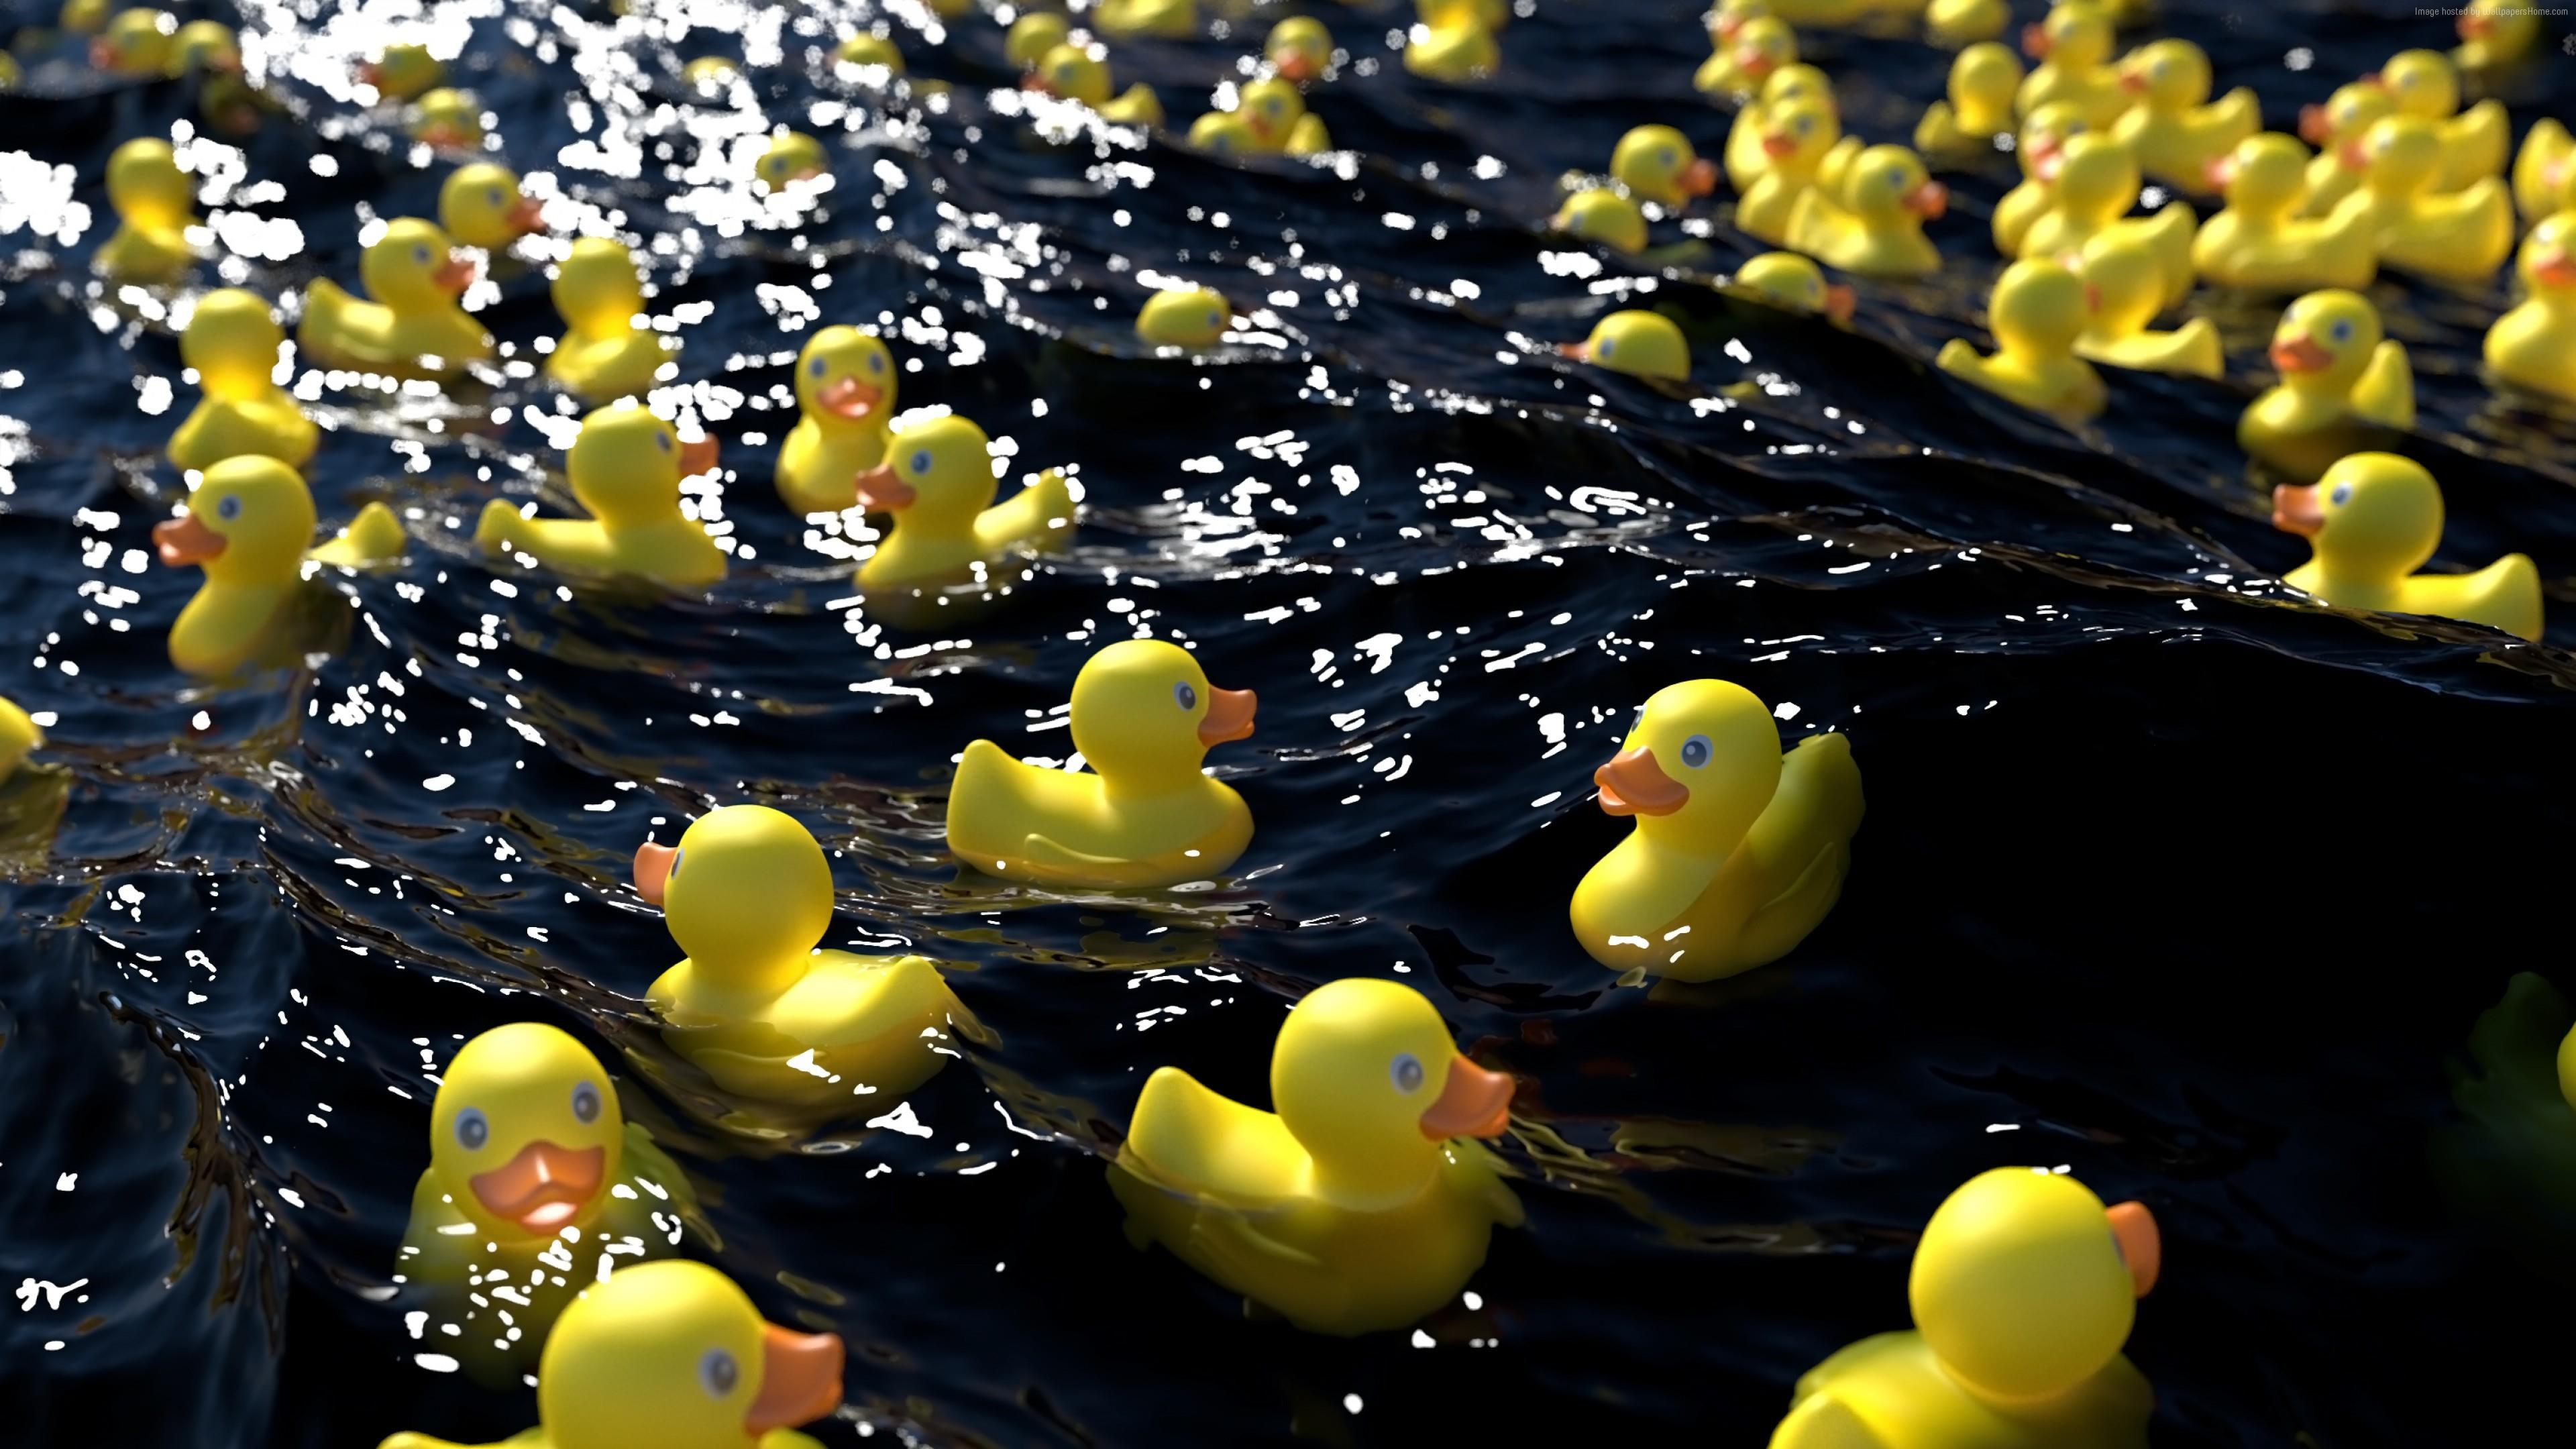 65 Rubber Duck Wallpapers   Download at WallpaperBro 3840x2160